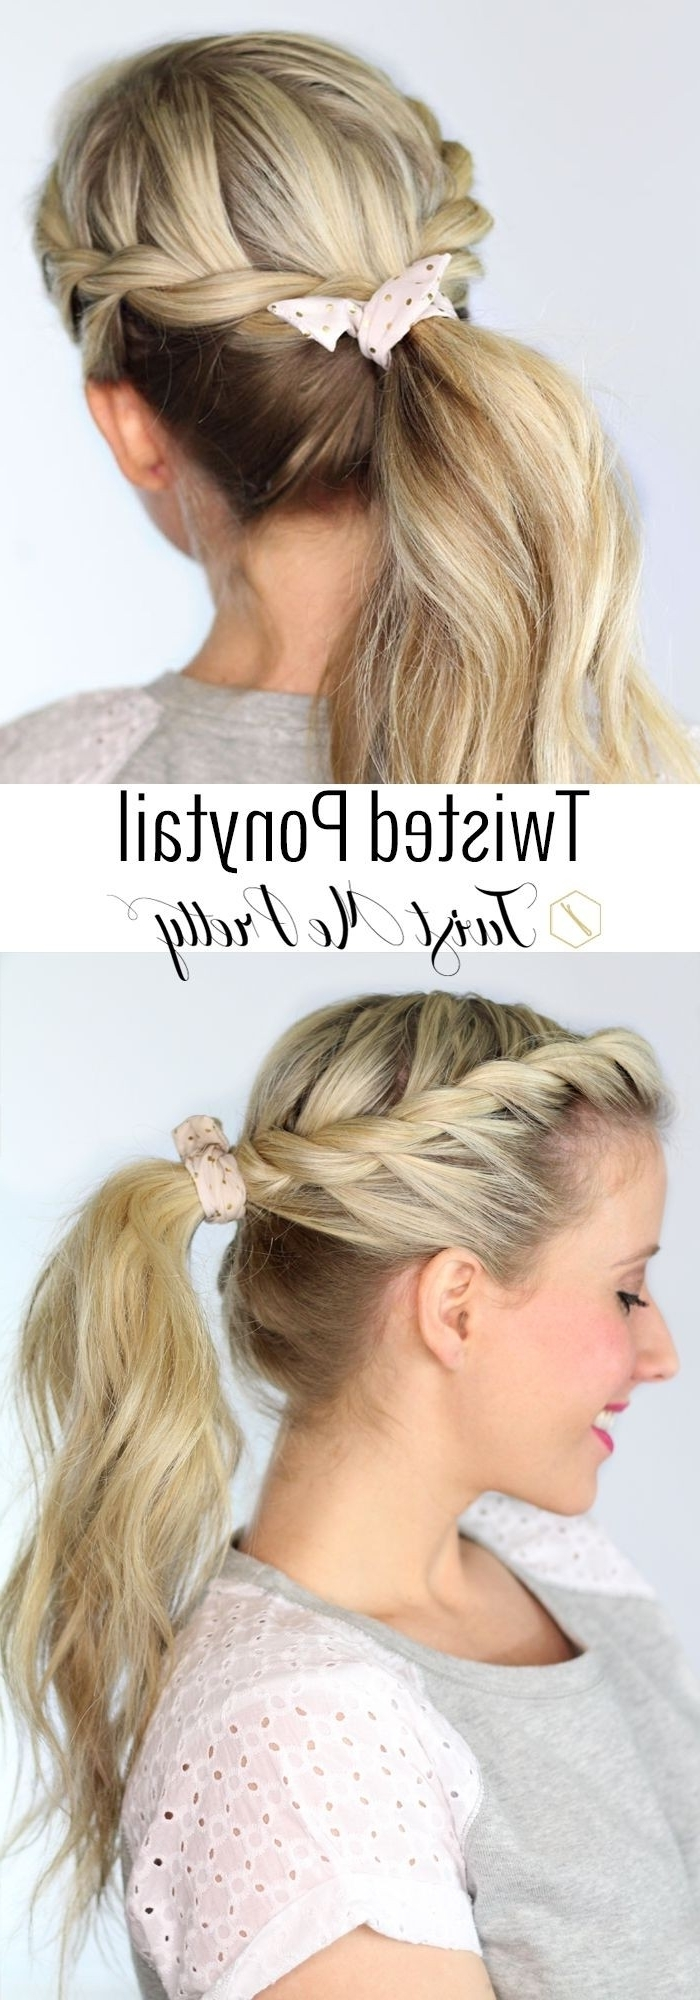 Favorite Ponytail Hairstyles For Layered Hair With Regard To 10 Cute Ponytail Ideas: Summer And Fall Hairstyles For Long Hair (View 11 of 20)